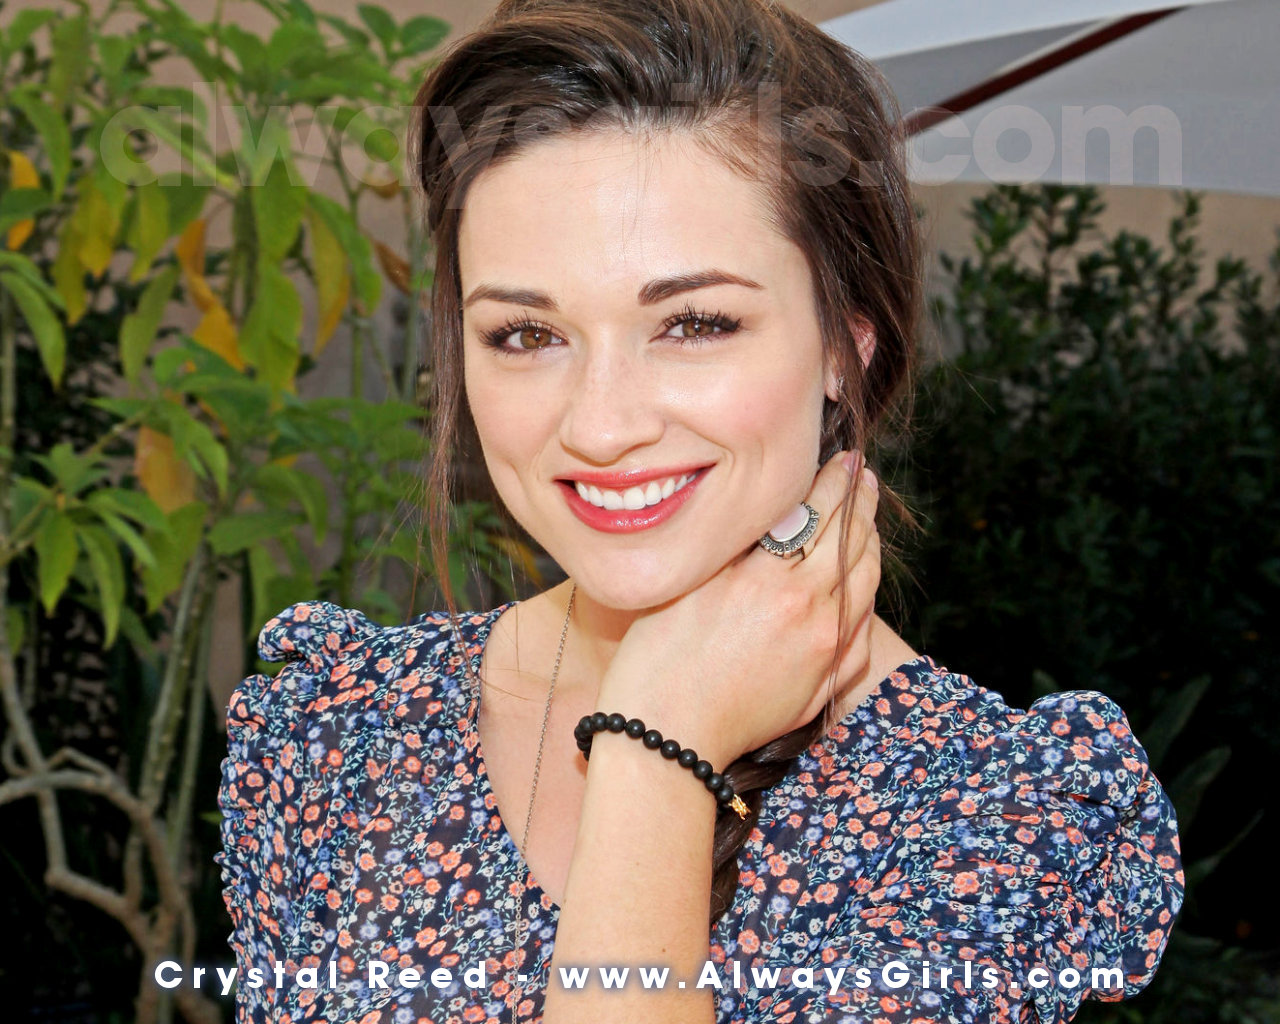 Crystal Reed Pictures